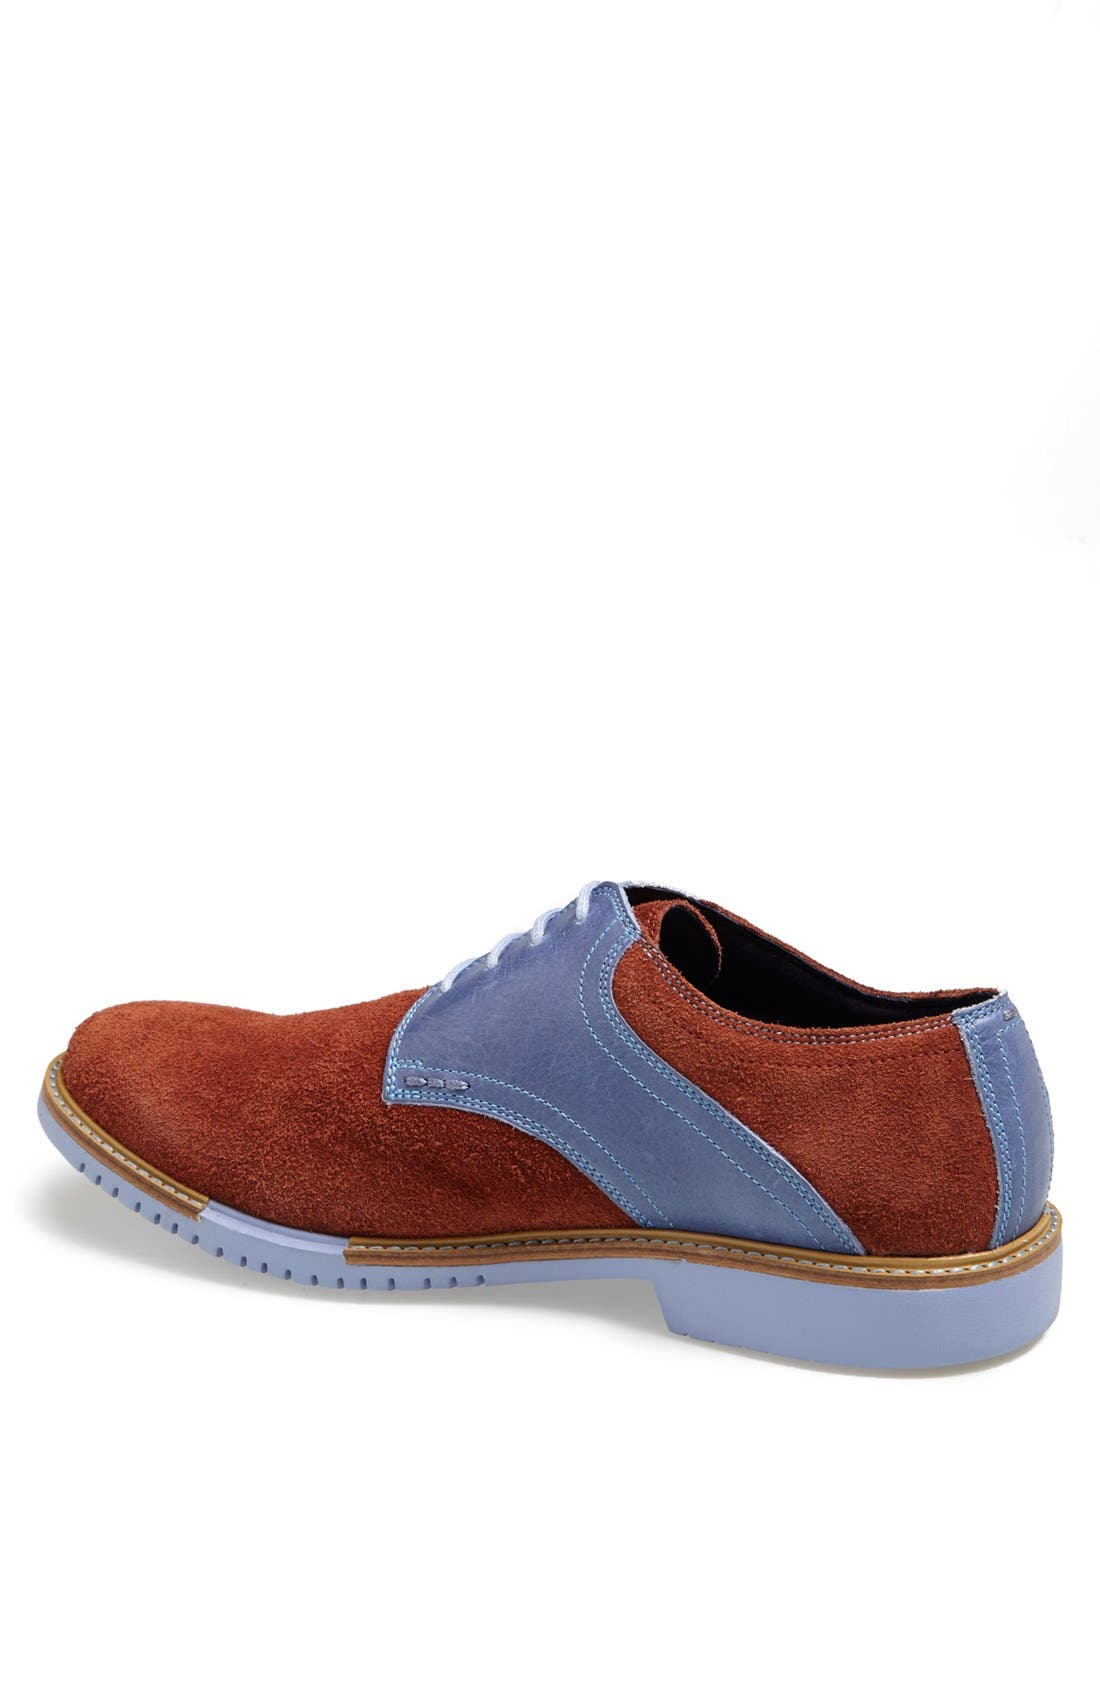 Alternate Image 2  - Cole Haan 'Great Jones' Saddle Shoe